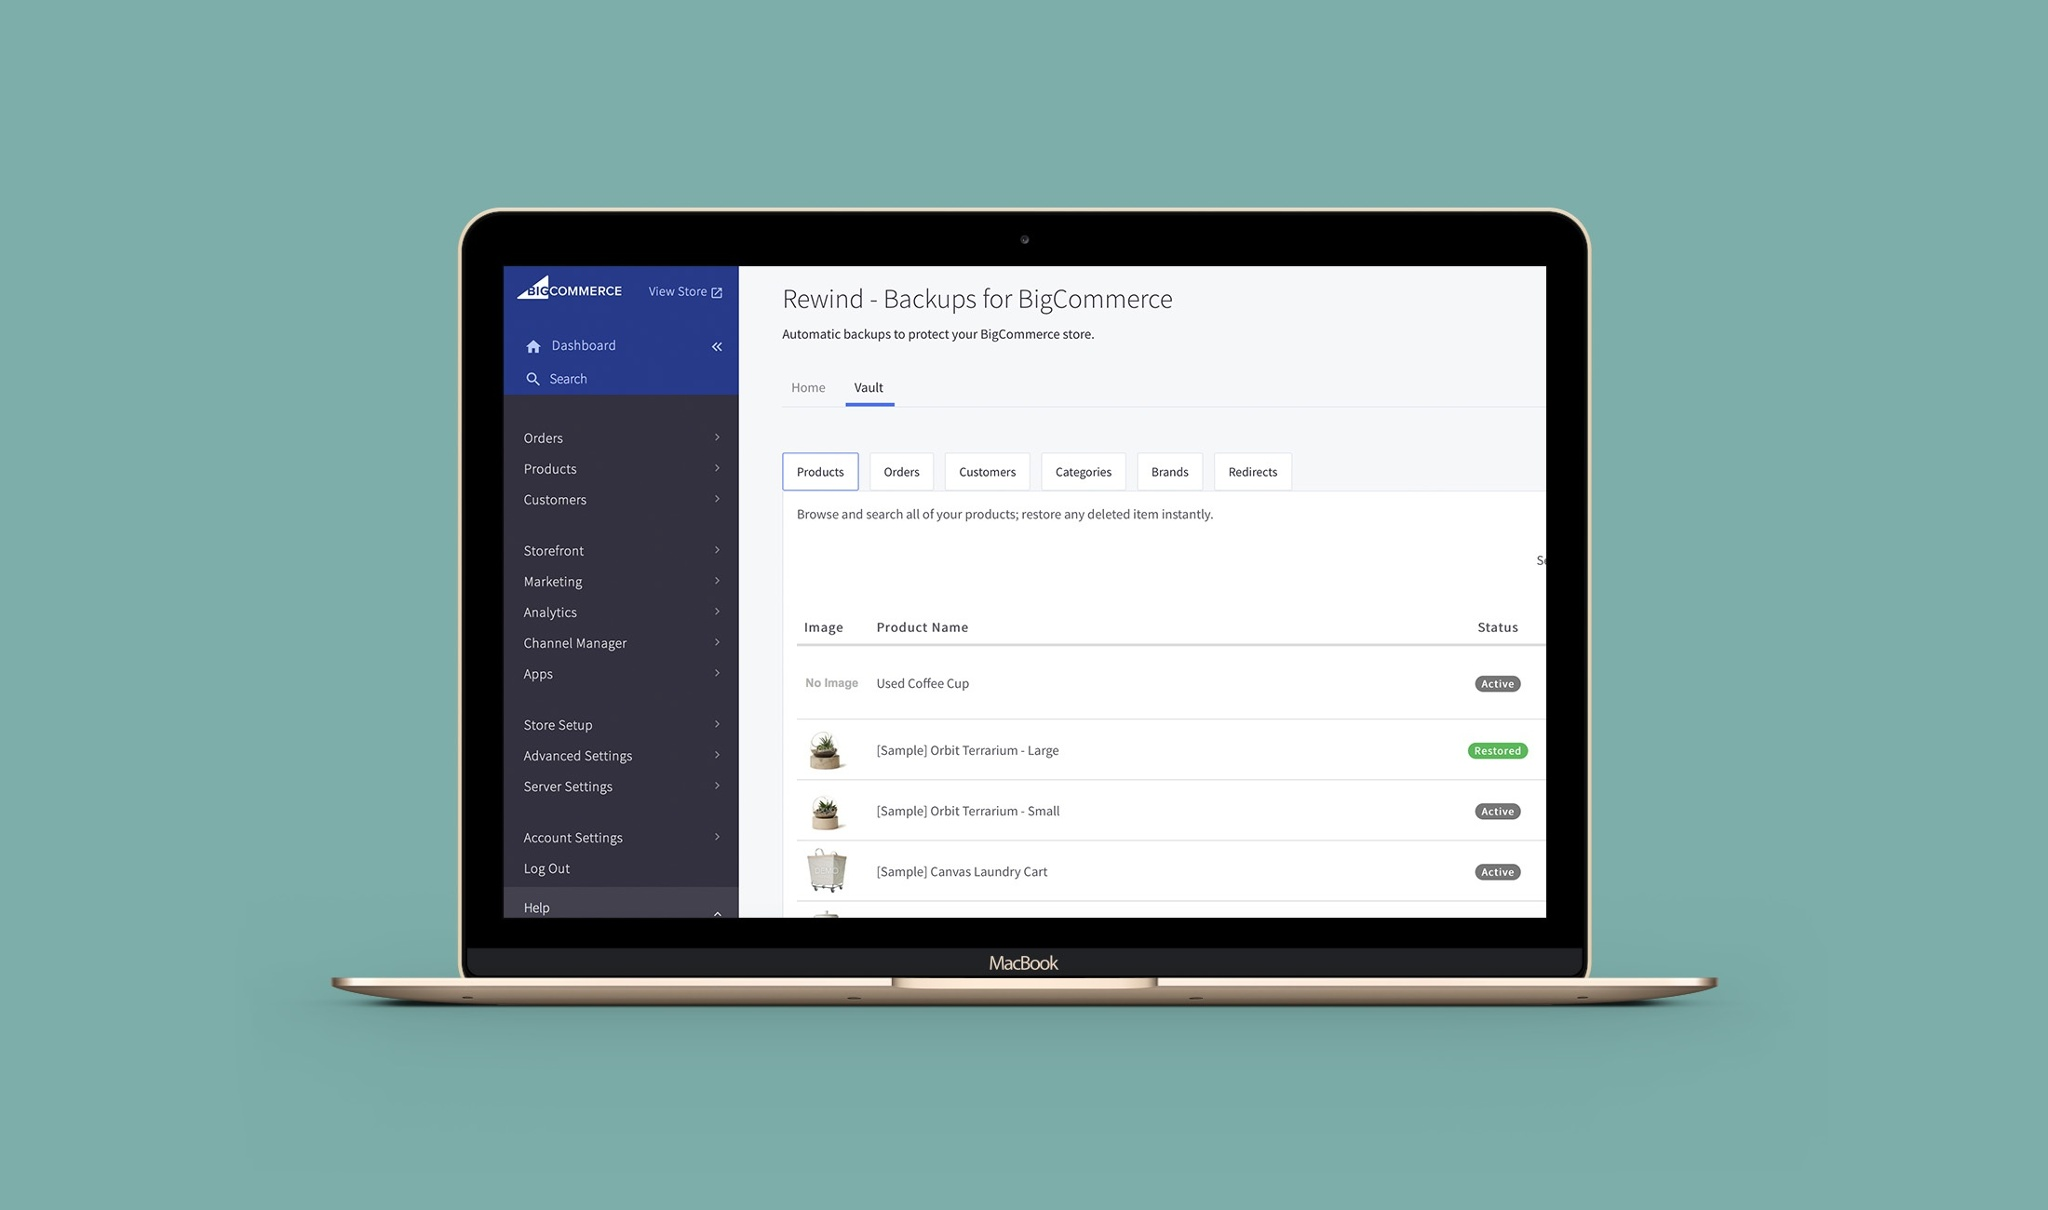 Additions to Your BigCommerce Rewind Vault